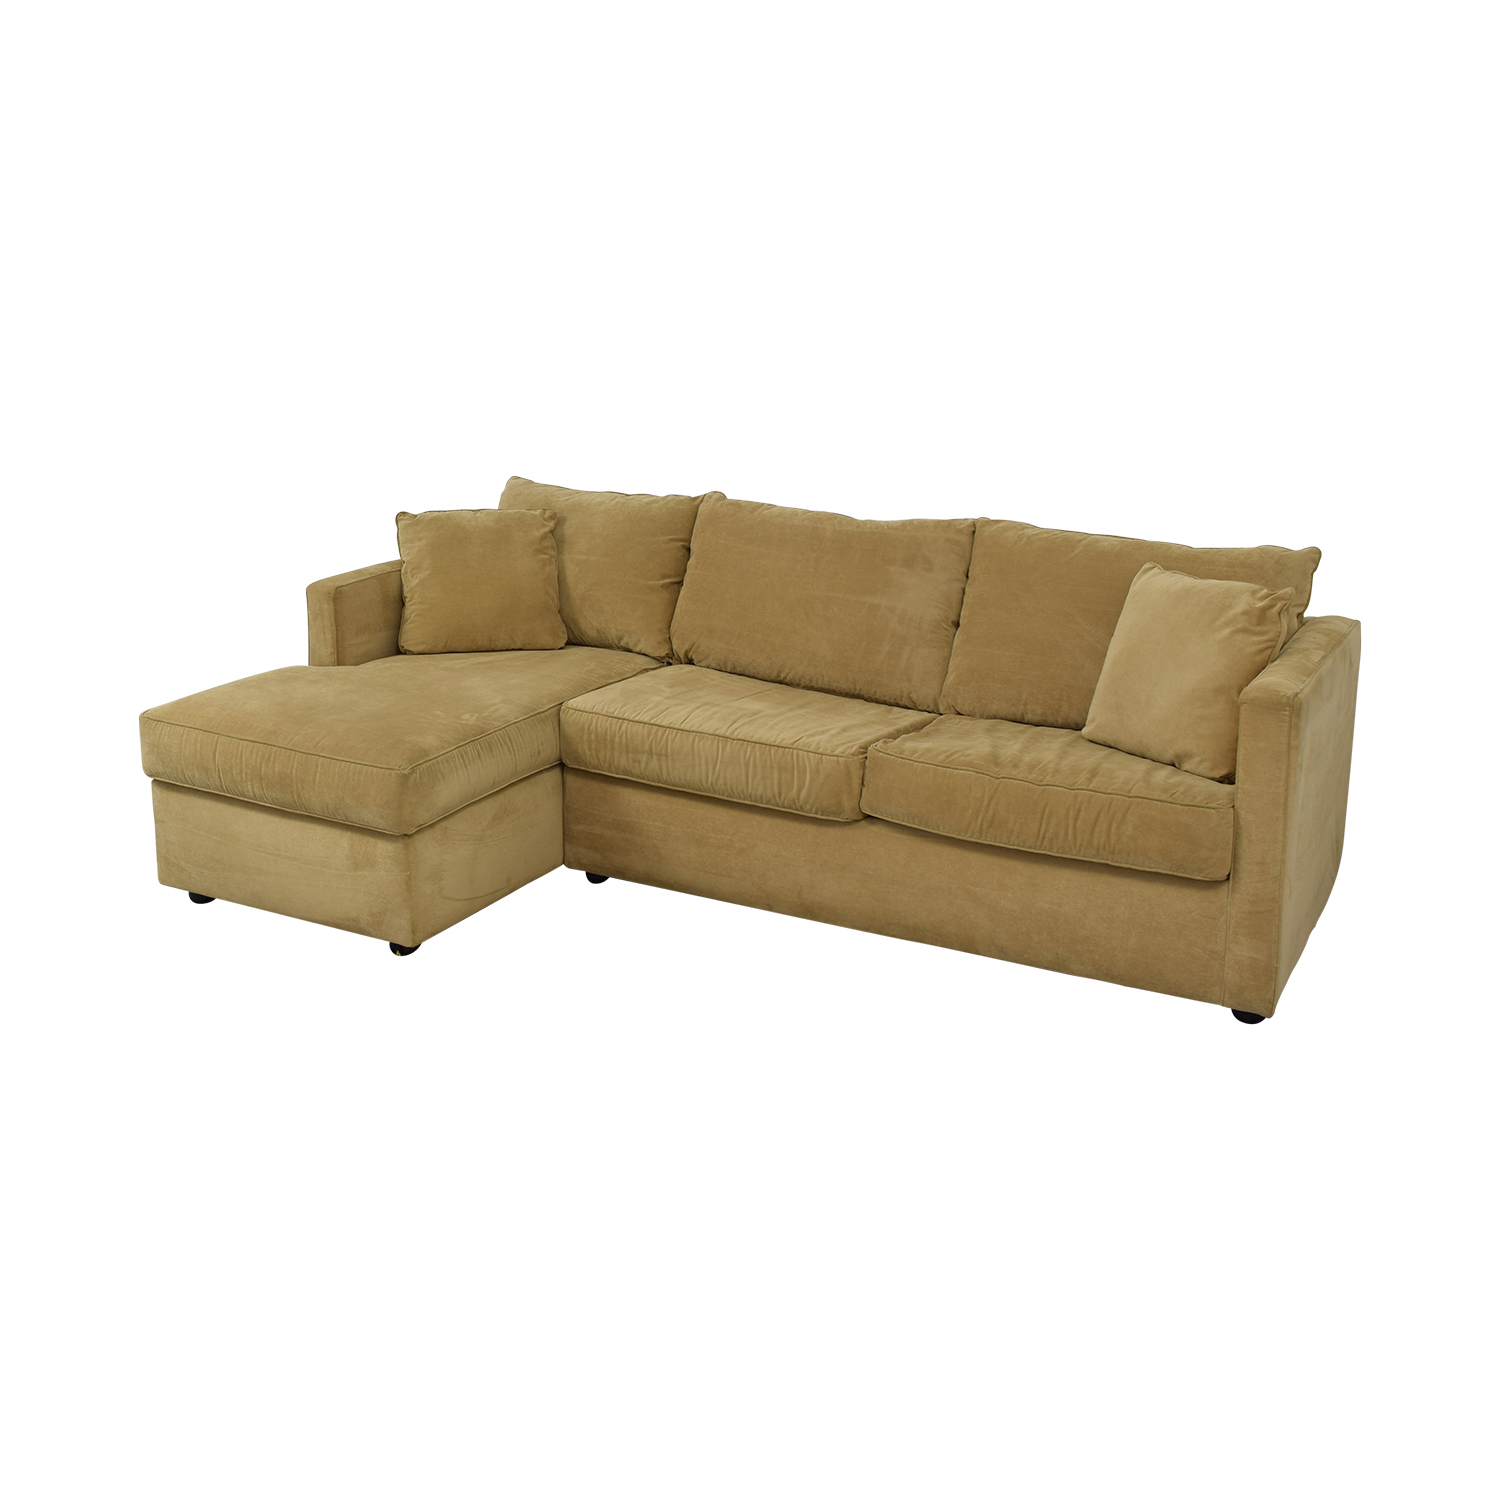 Klaussner Klaussner Chaise Sectional Sleeper Sofa discount